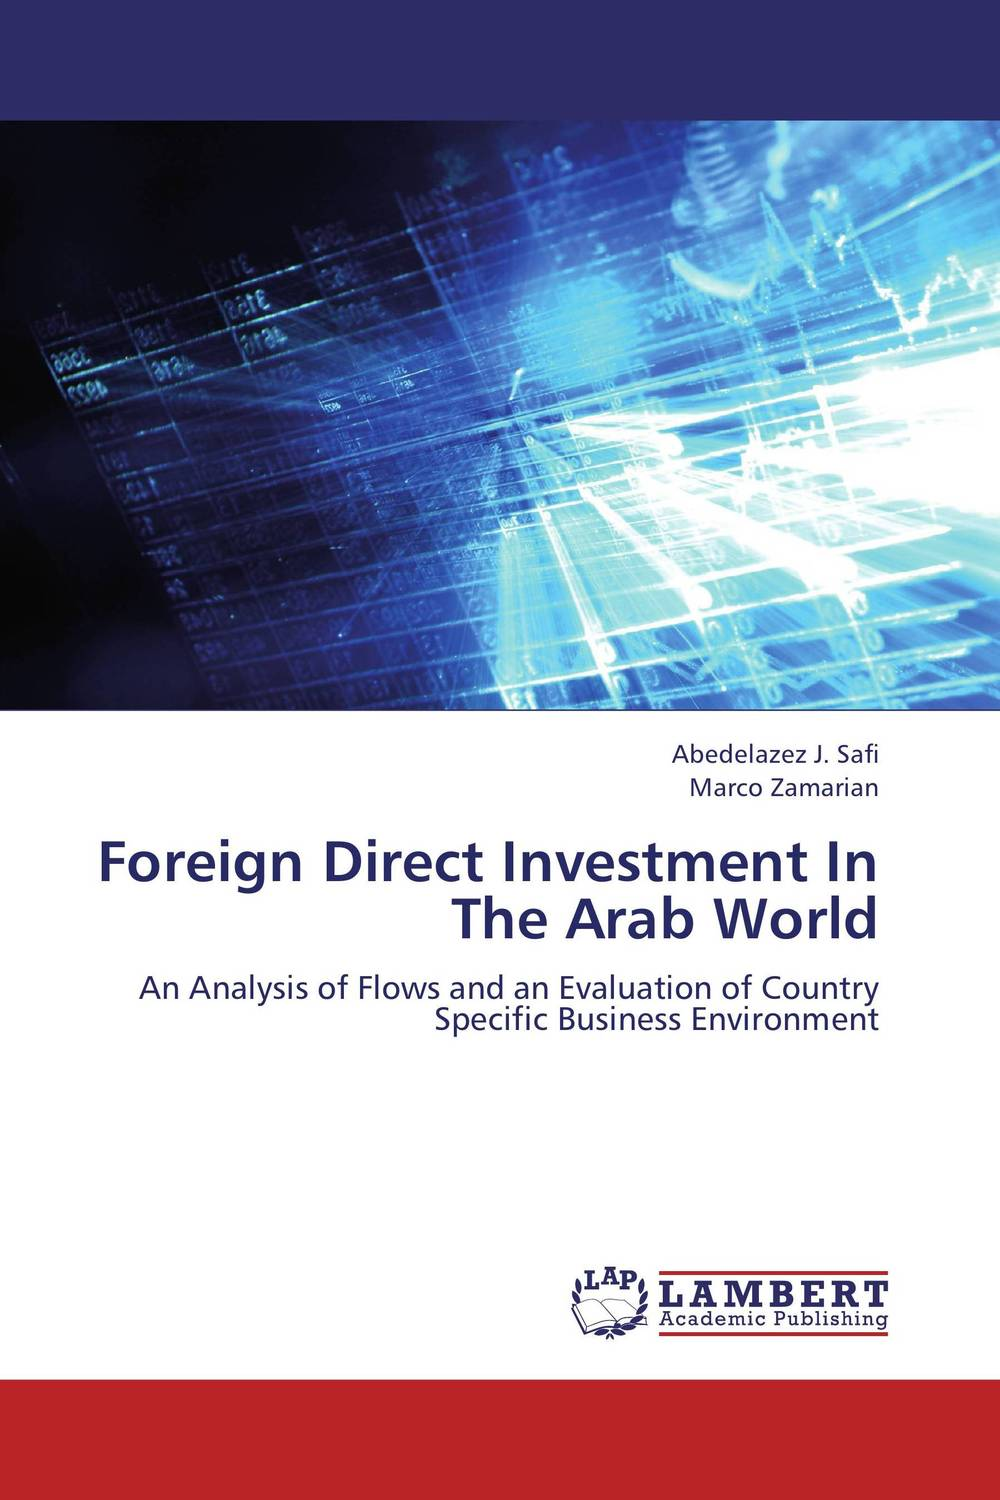 Foreign Direct Investment In The Arab World kenneth rosen d investing in income properties the big six formula for achieving wealth in real estate